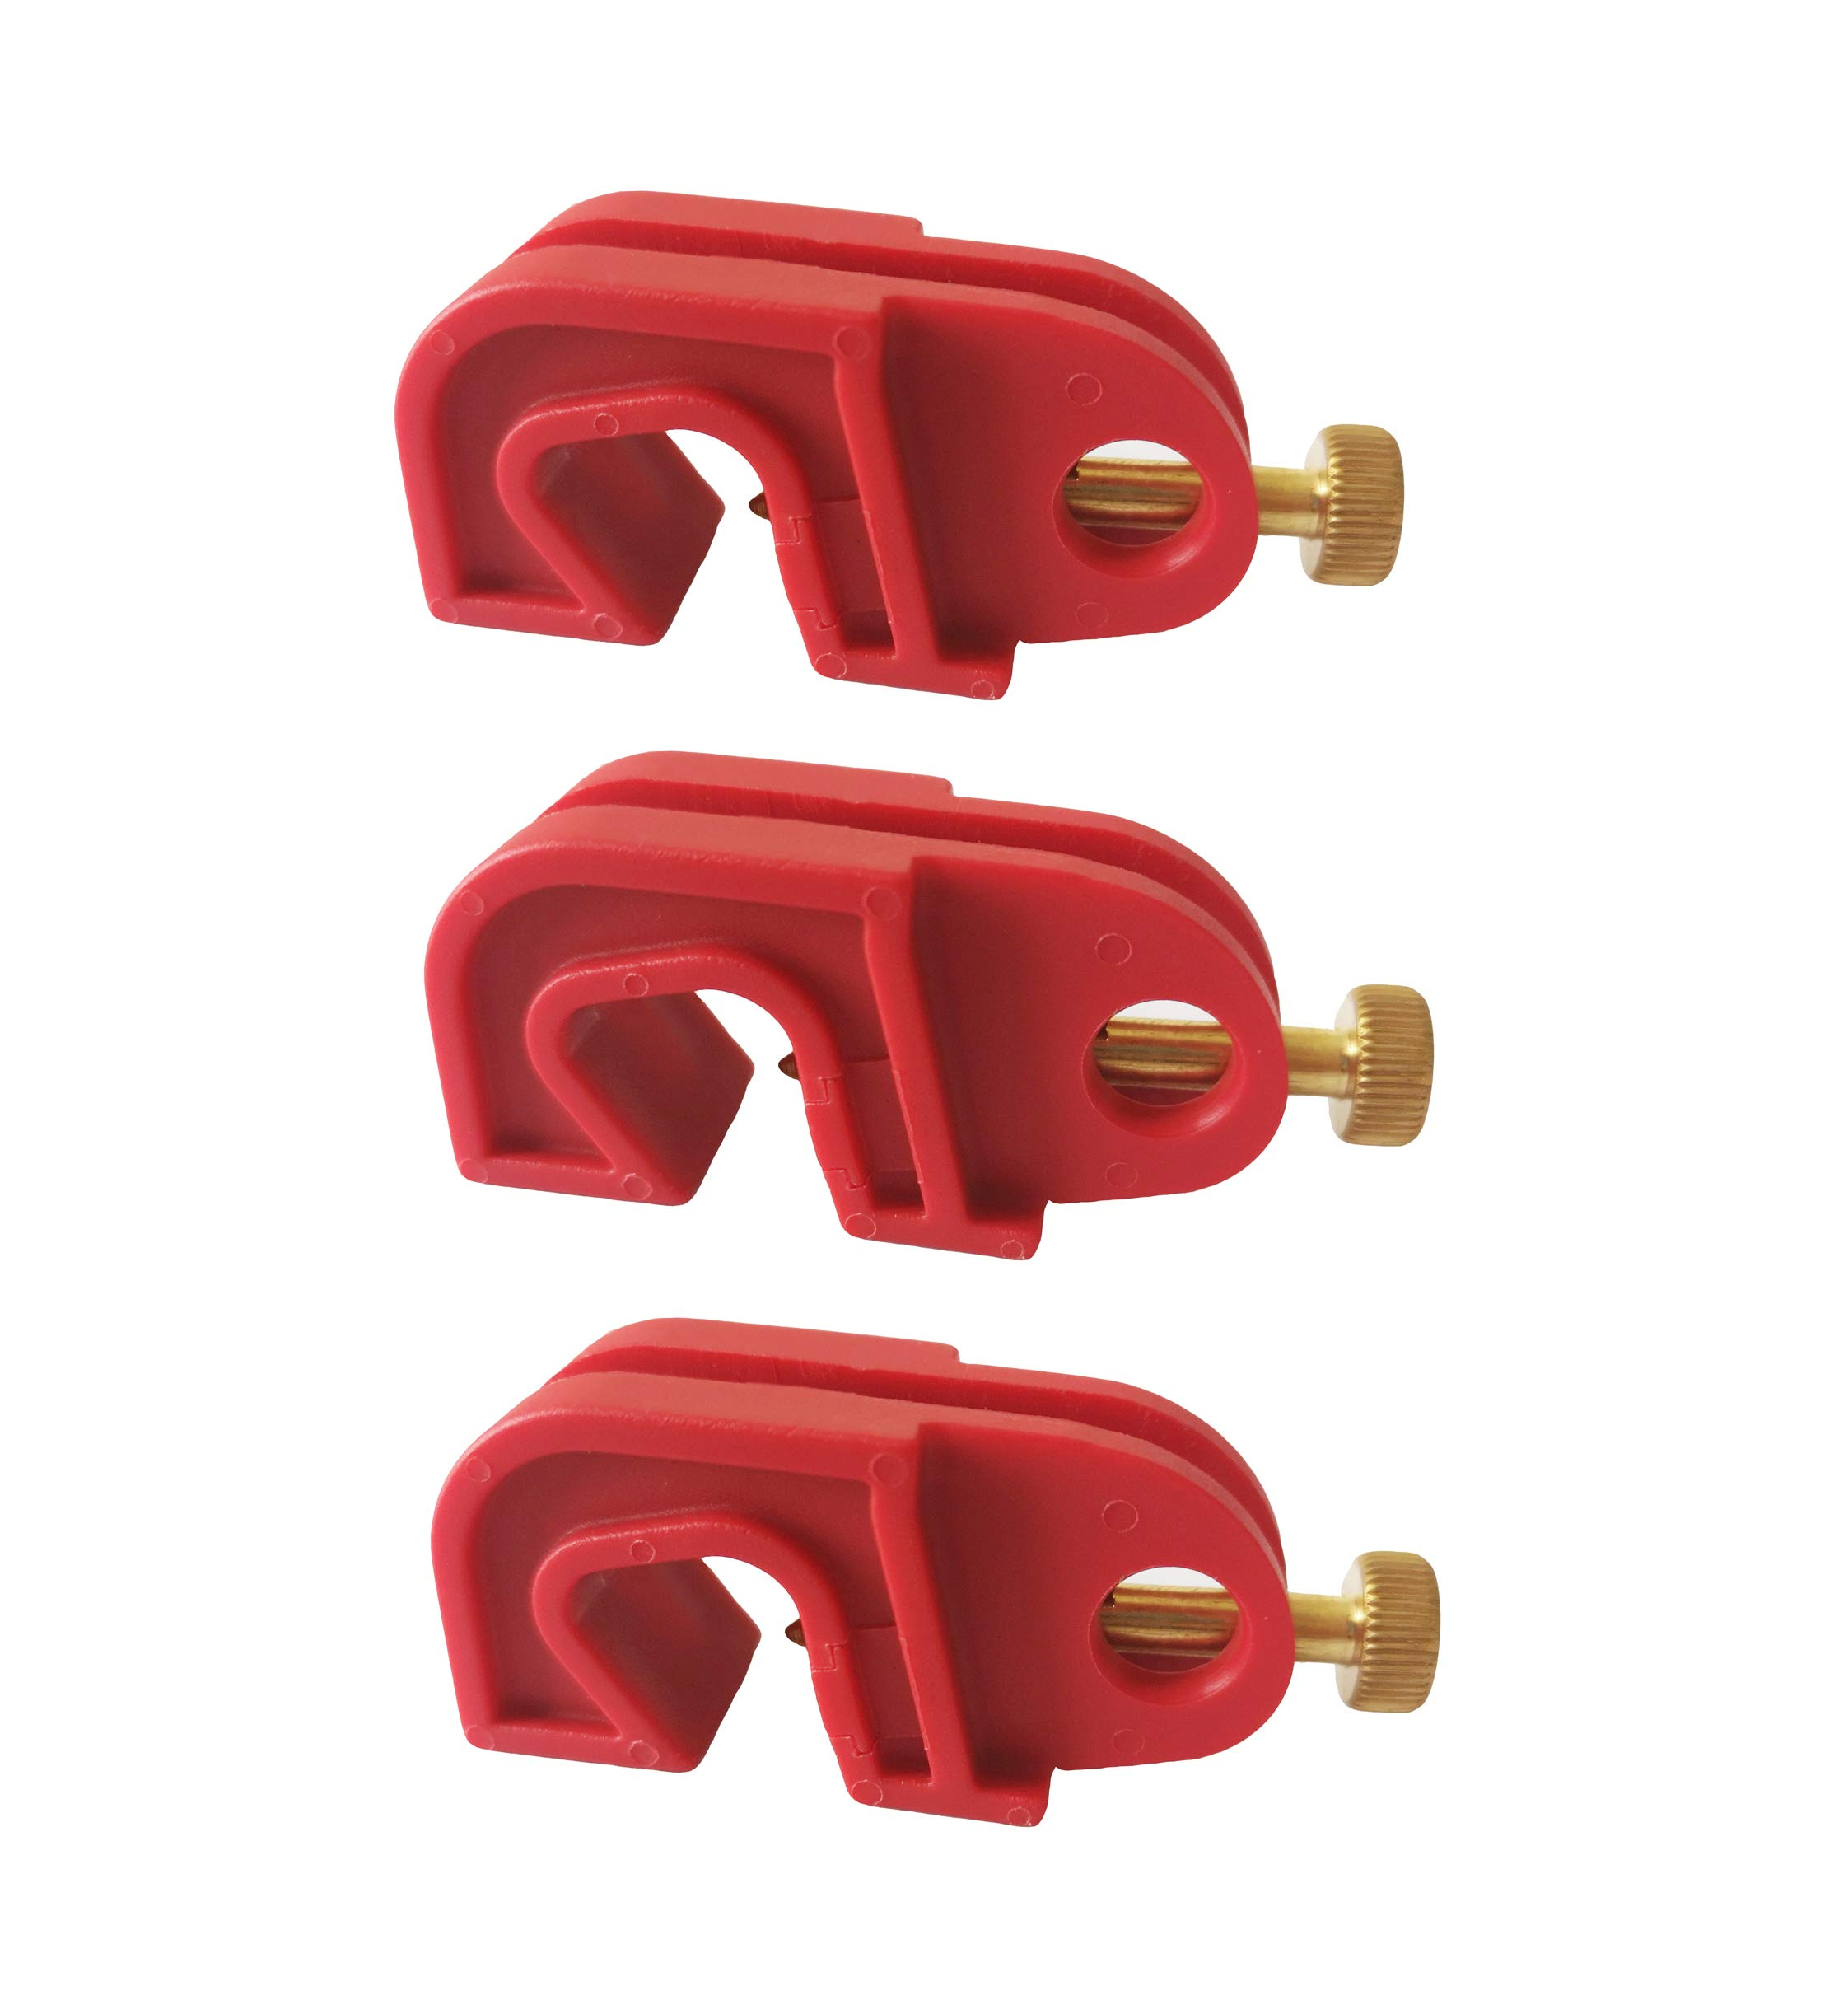 Induschoice Universal Single Breaker Lockout,3 Pack